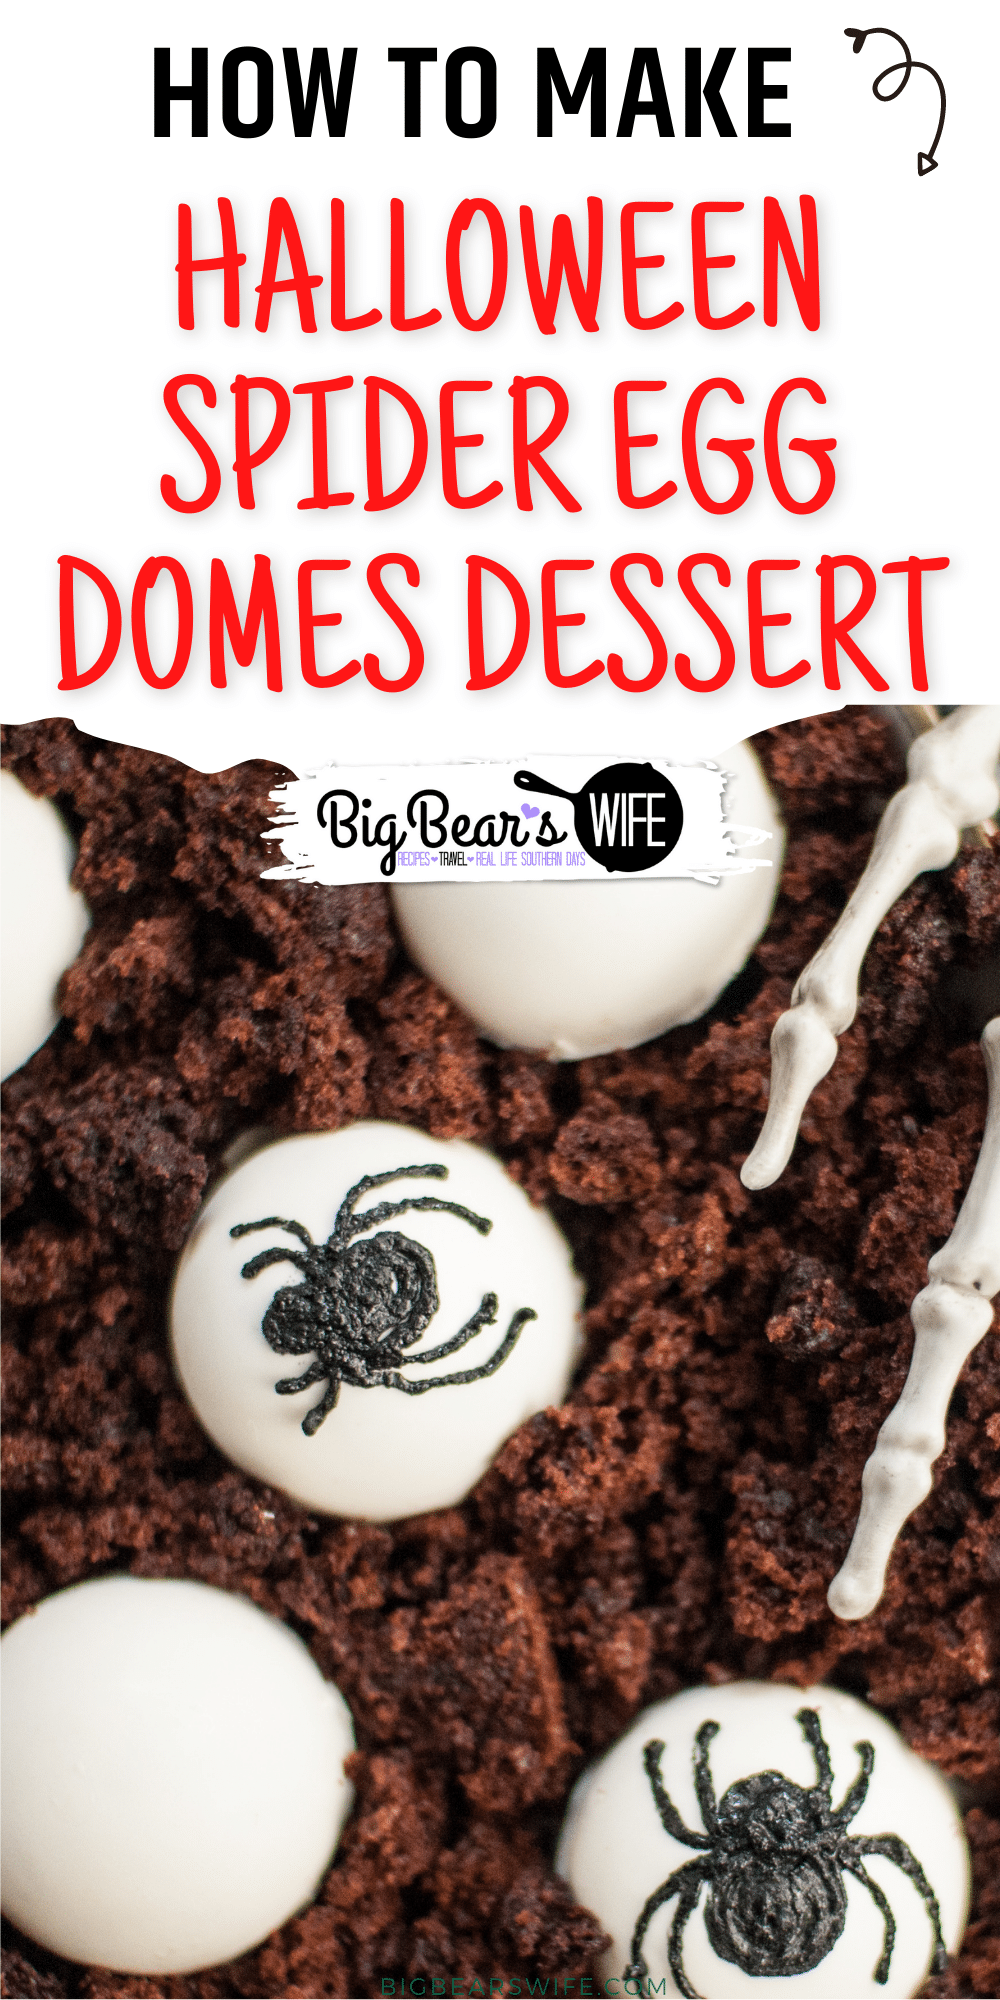 Halloween Spider Egg Domes Dessert - A creepy Halloween dessert, with layers of chocolate cake and dark chocolate mousse! These little bites are covered in white melting chocolate and decorated with black spiders to look like spider eggs. Perfect for Halloween! via @bigbearswife